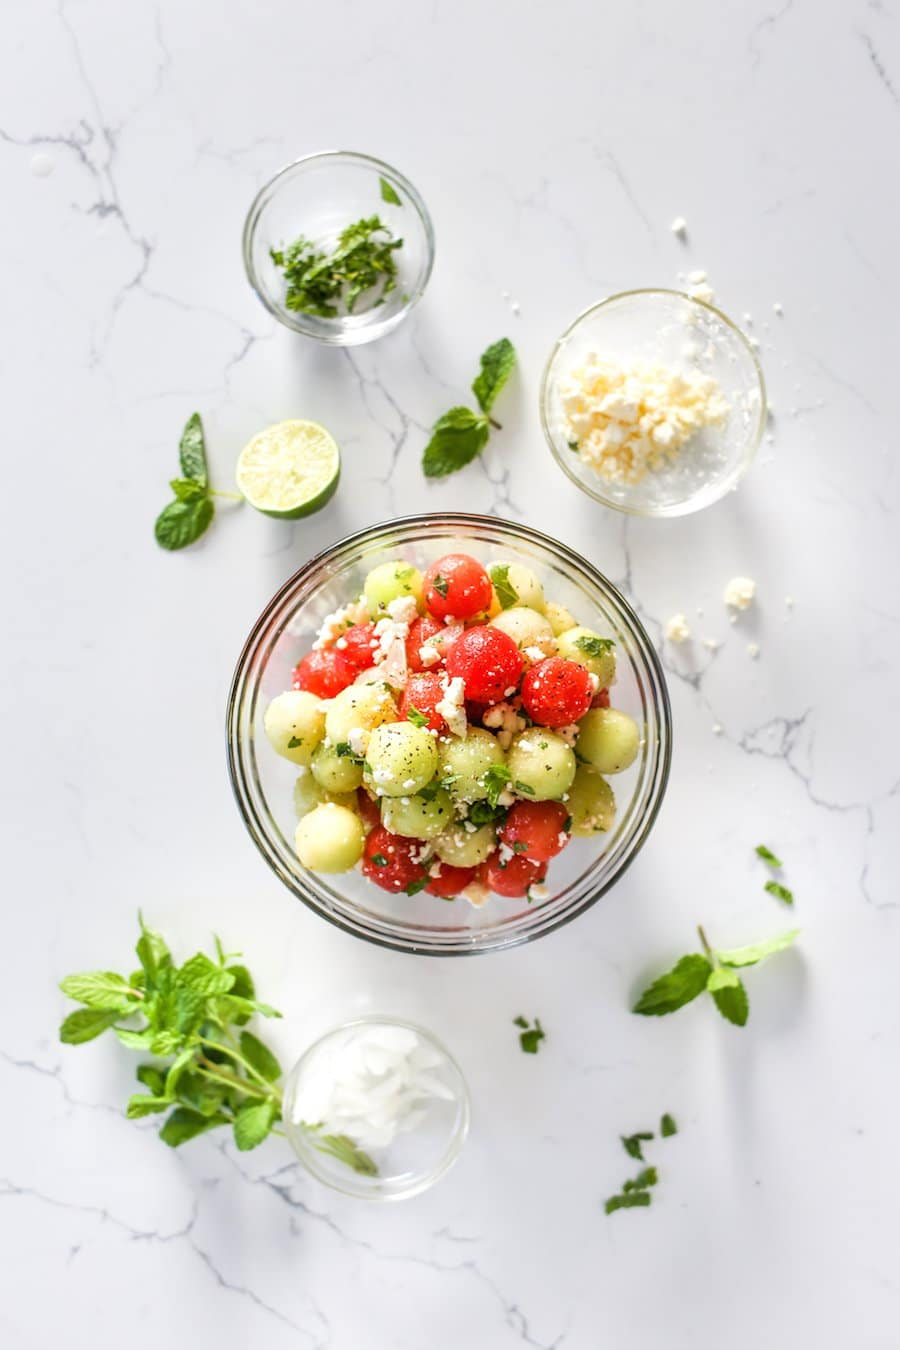 Mint and Melon Salad with Feta and Pickled Onions, Fruit Salad, Recipe, Mint and Melon Salad, Honeydew and Watermelon Salad, Watermelon and Mint Salad Recipe, Watermelon and Feta Recipe, Summer Salad, Melon Balls, Melon Ball Salad